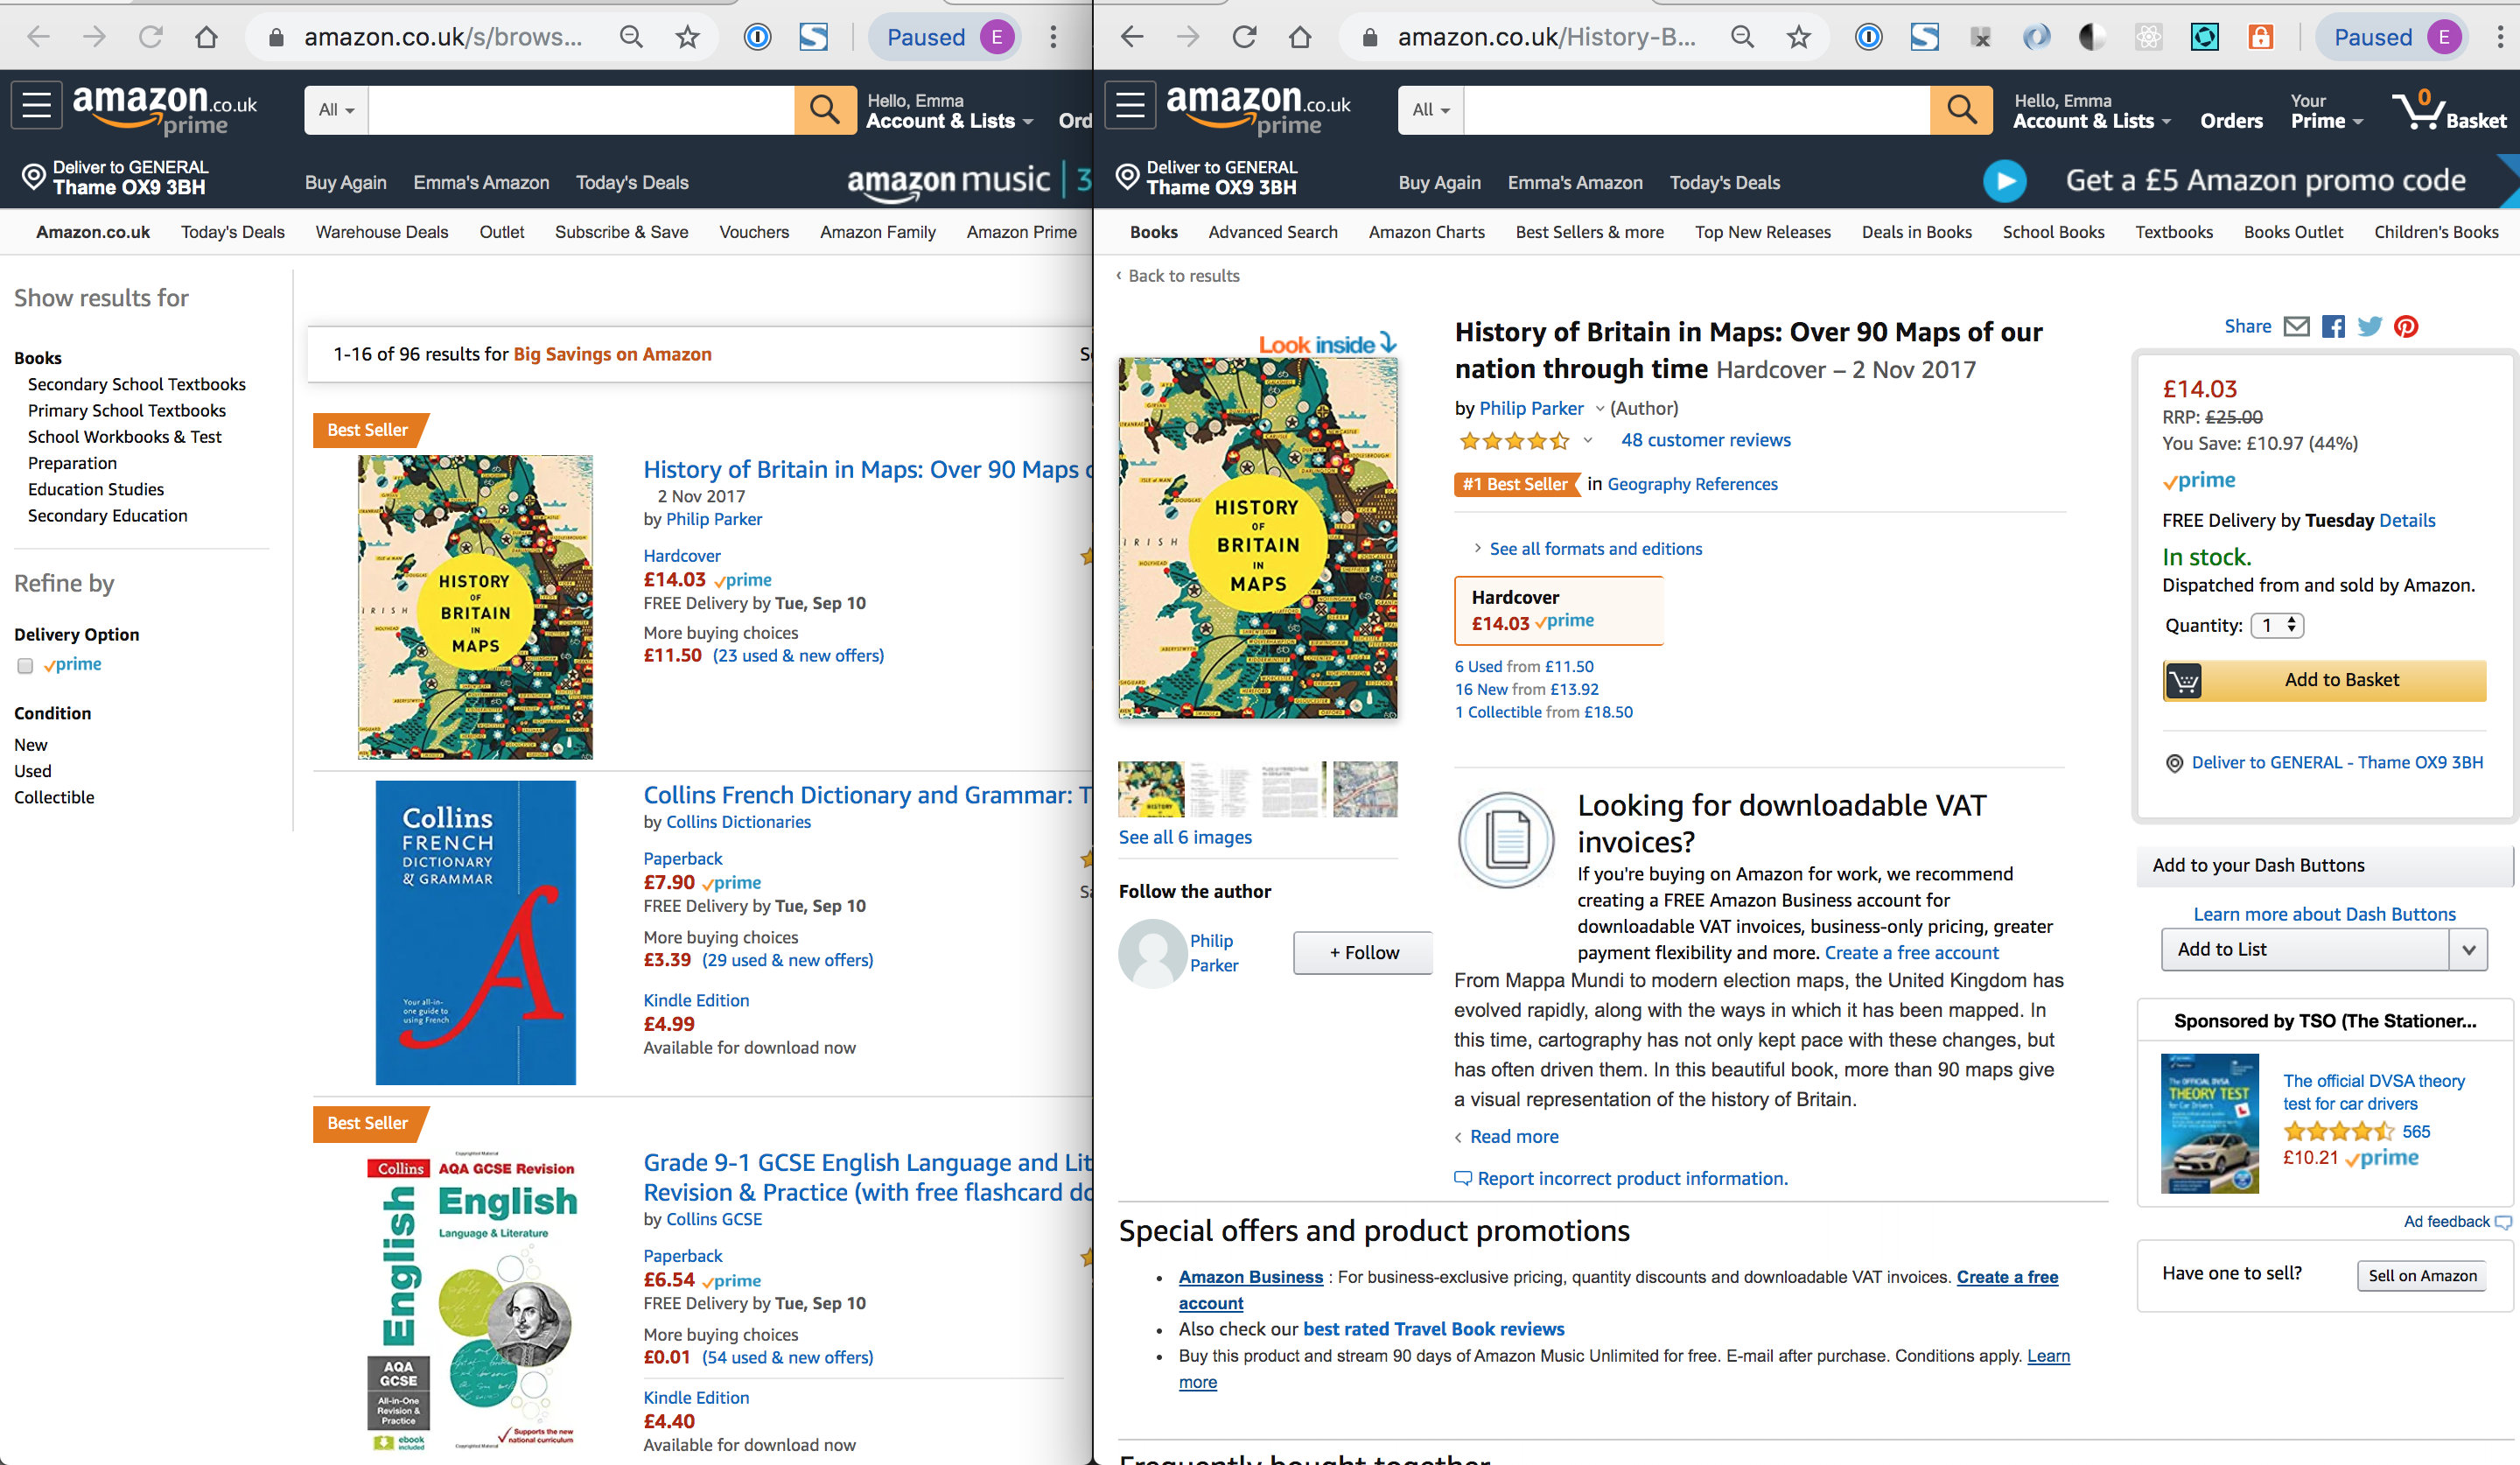 Screenshots of Amazon pages